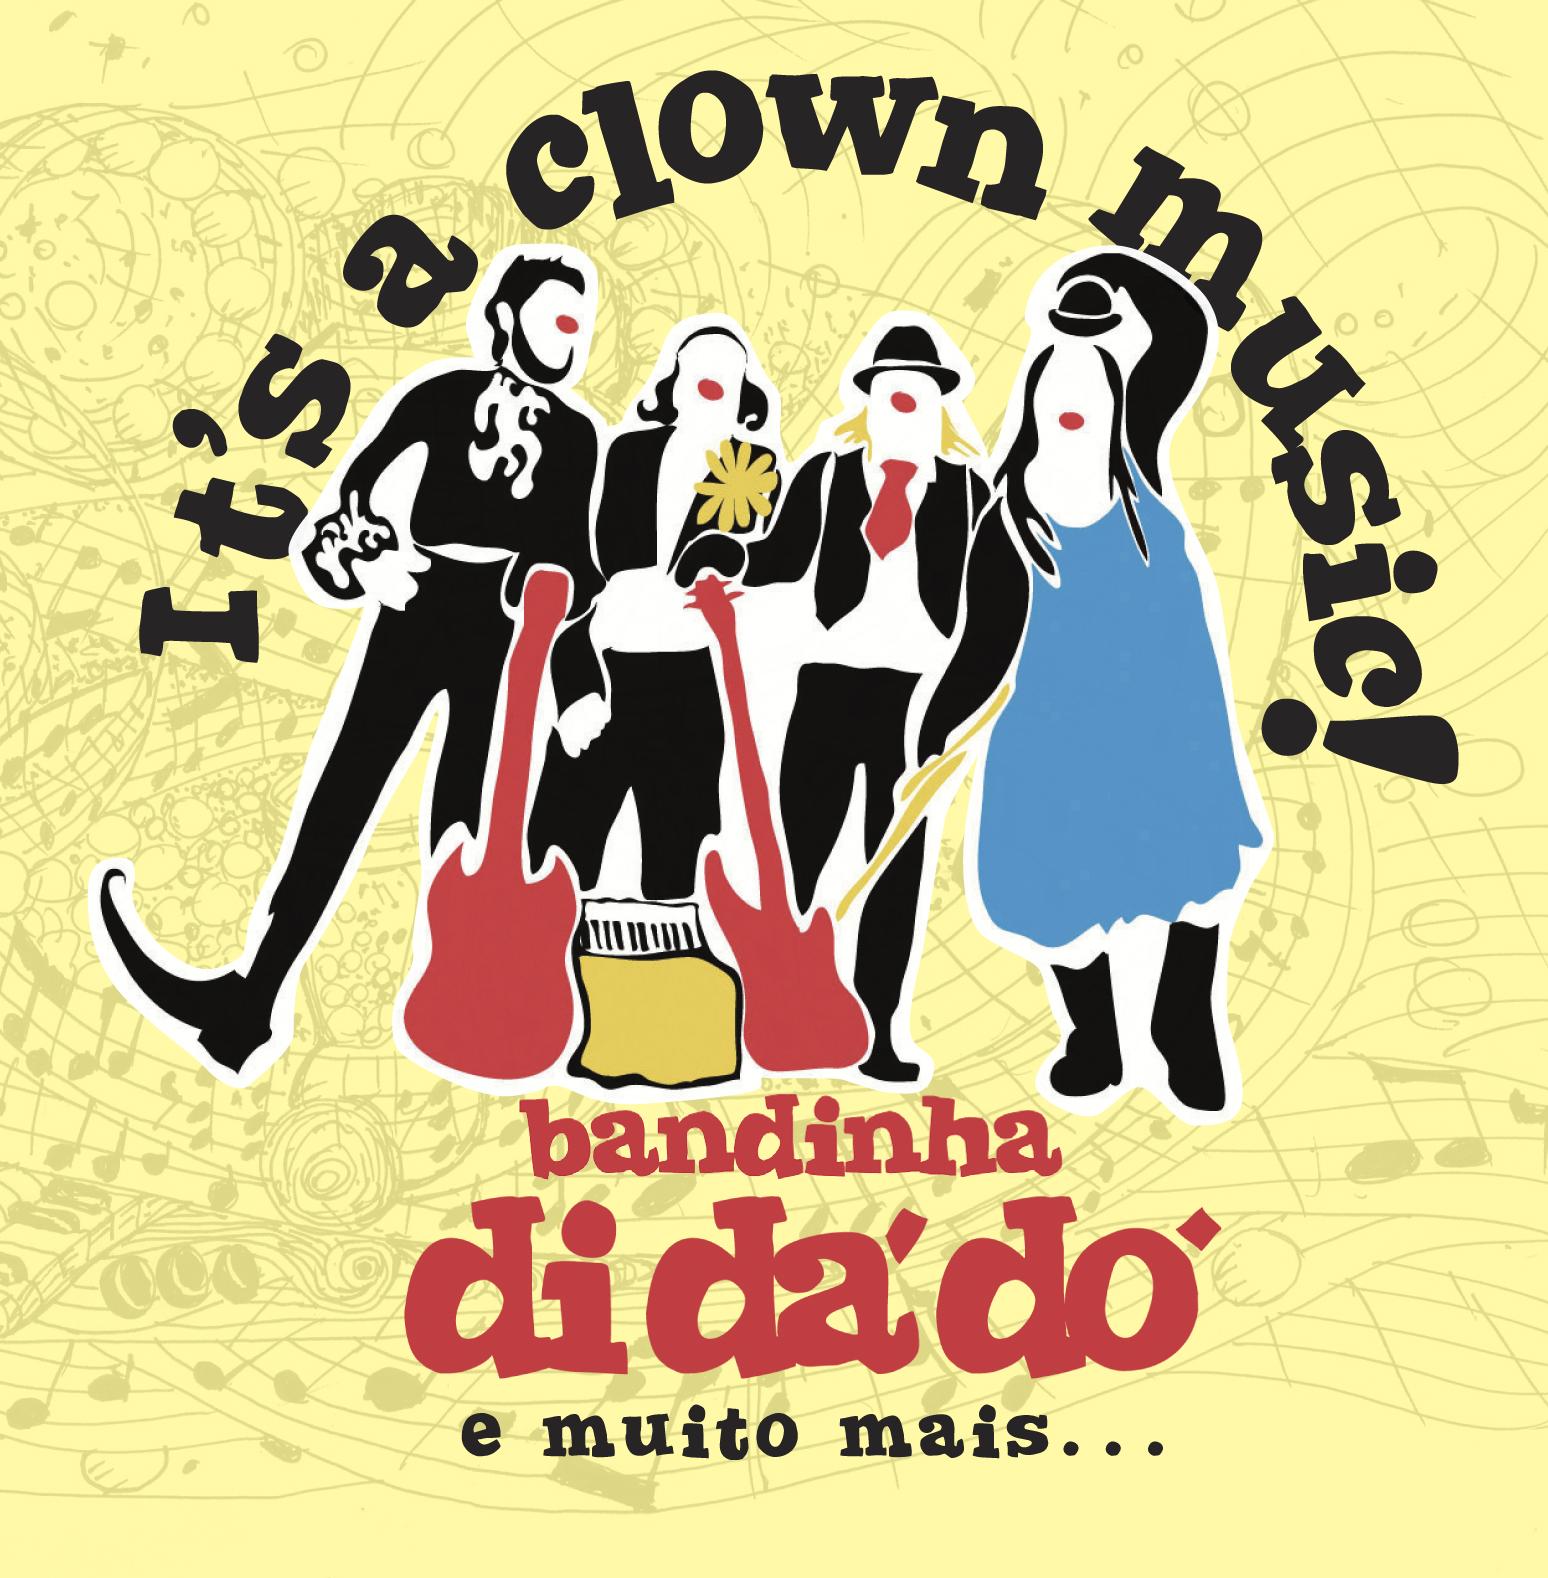 [artístico] It's a Clown Music